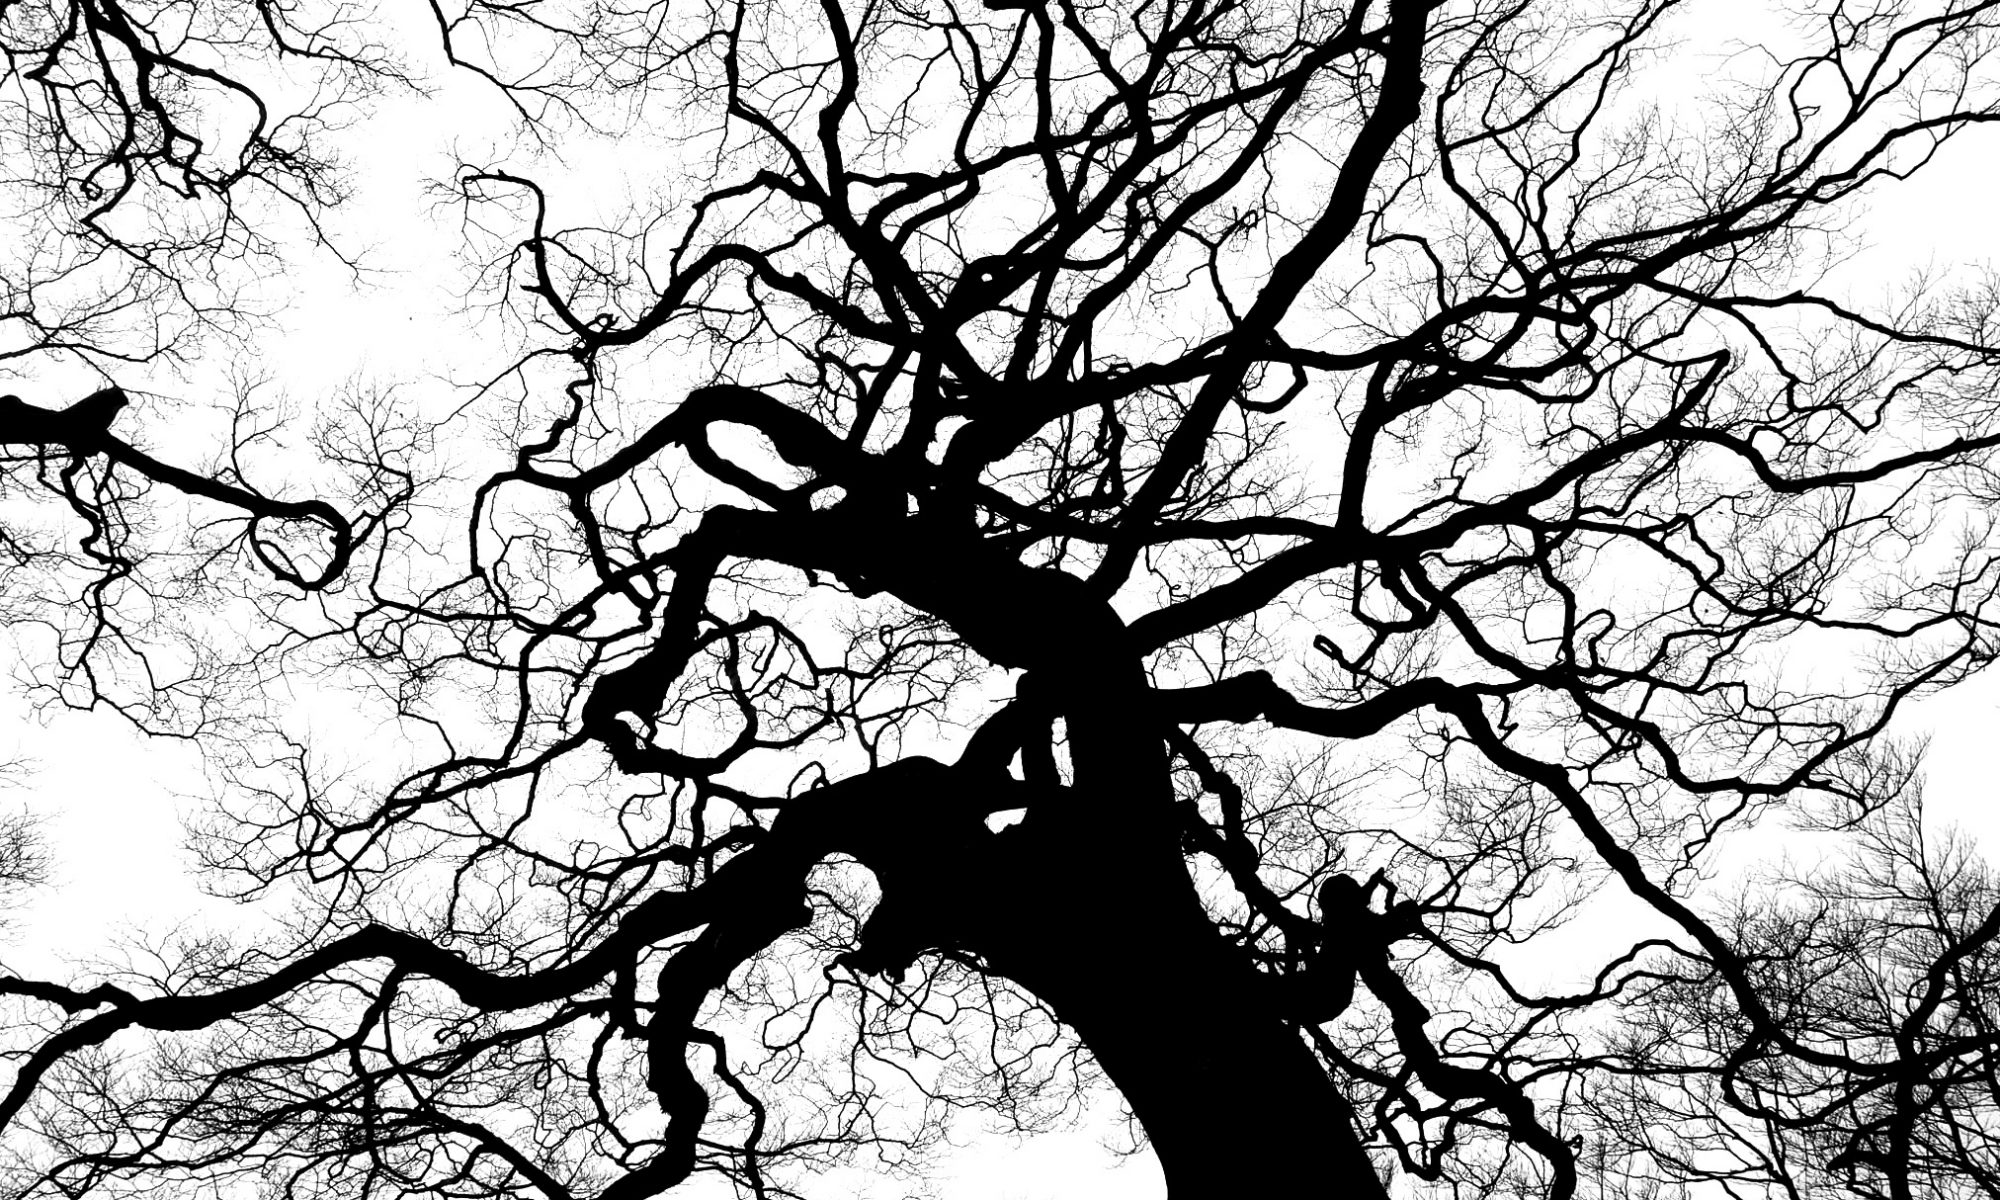 The branches of a tree against the sky.